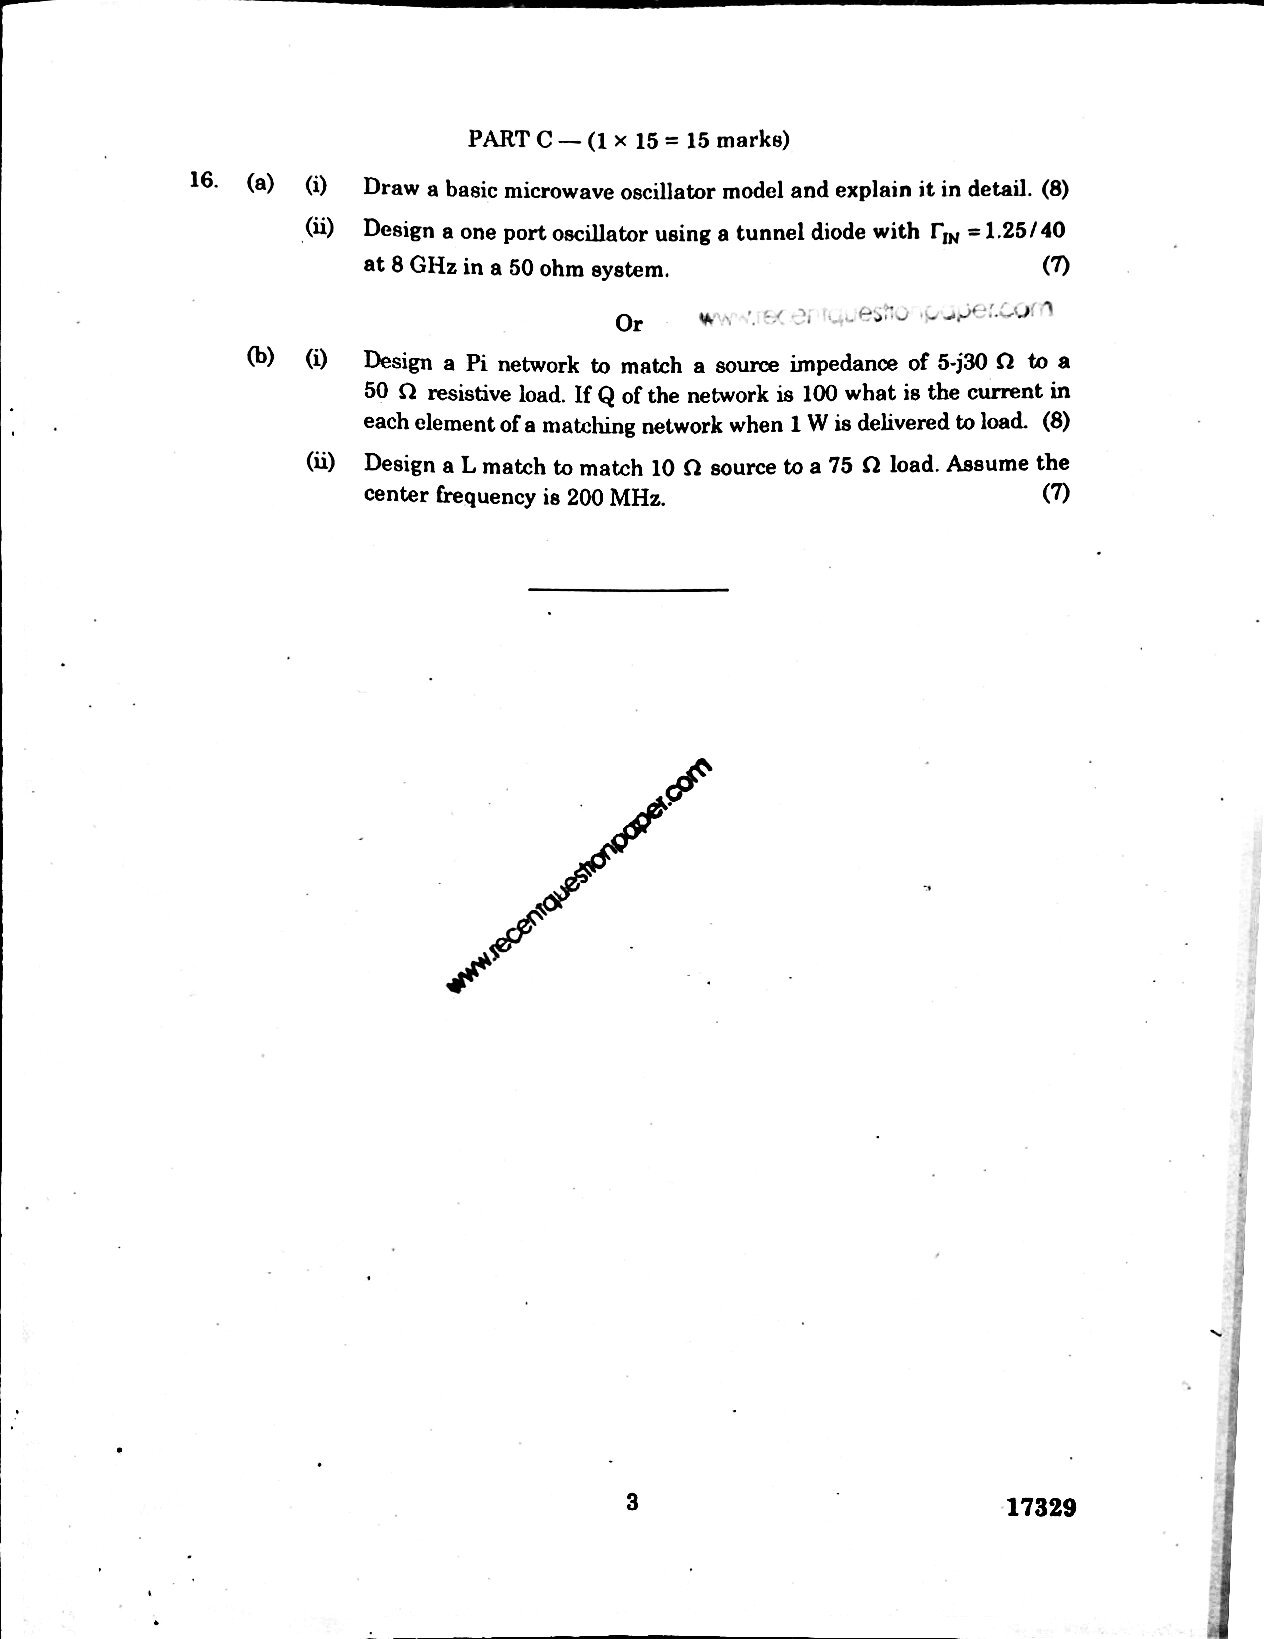 CU7202 MIC AND RF SYSTEM DESIGN 2 - Recent Question Paper